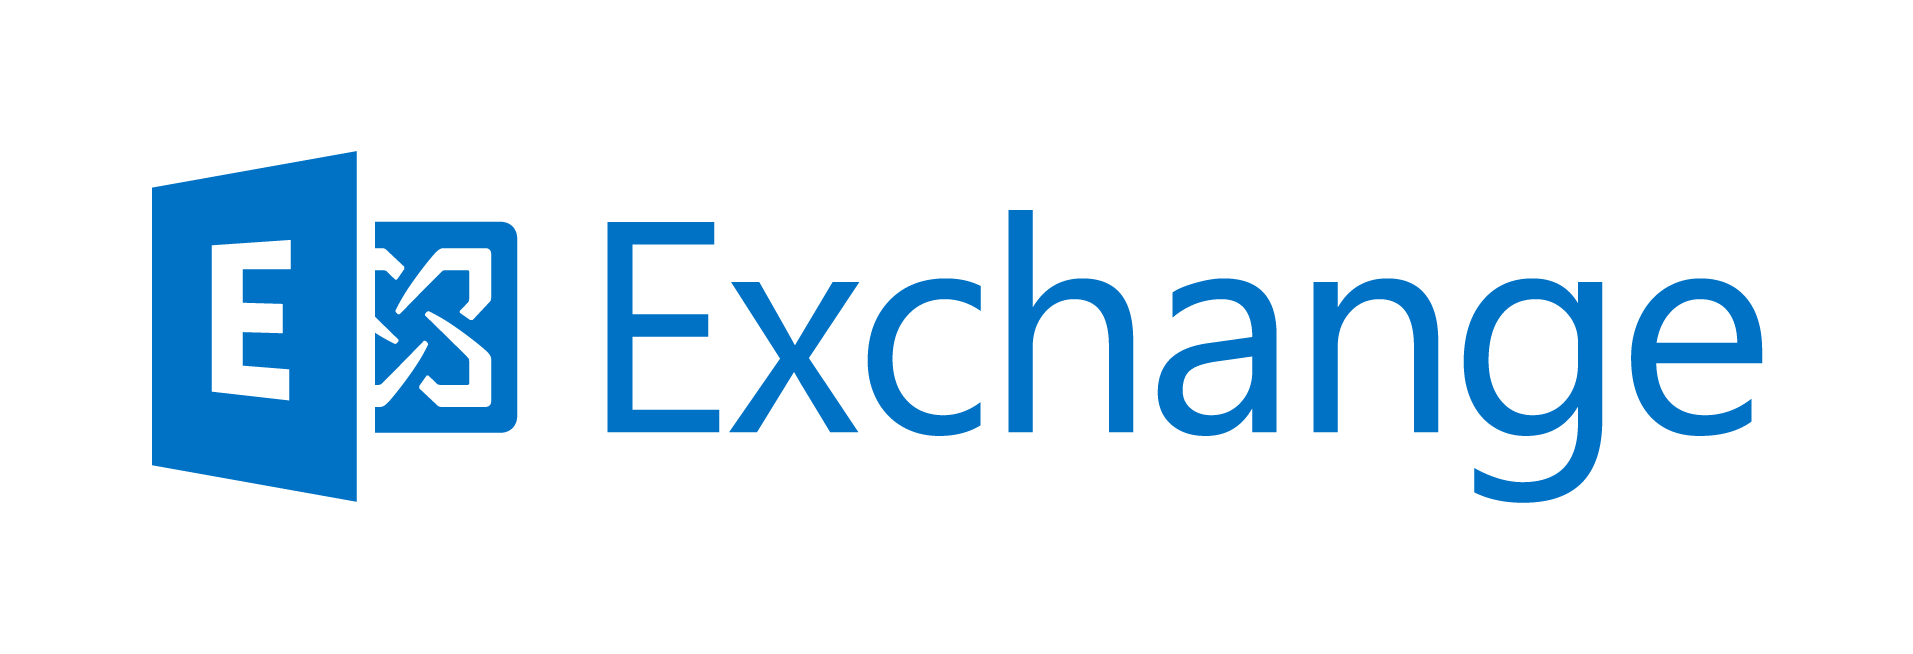 microsoft-exchange-logo